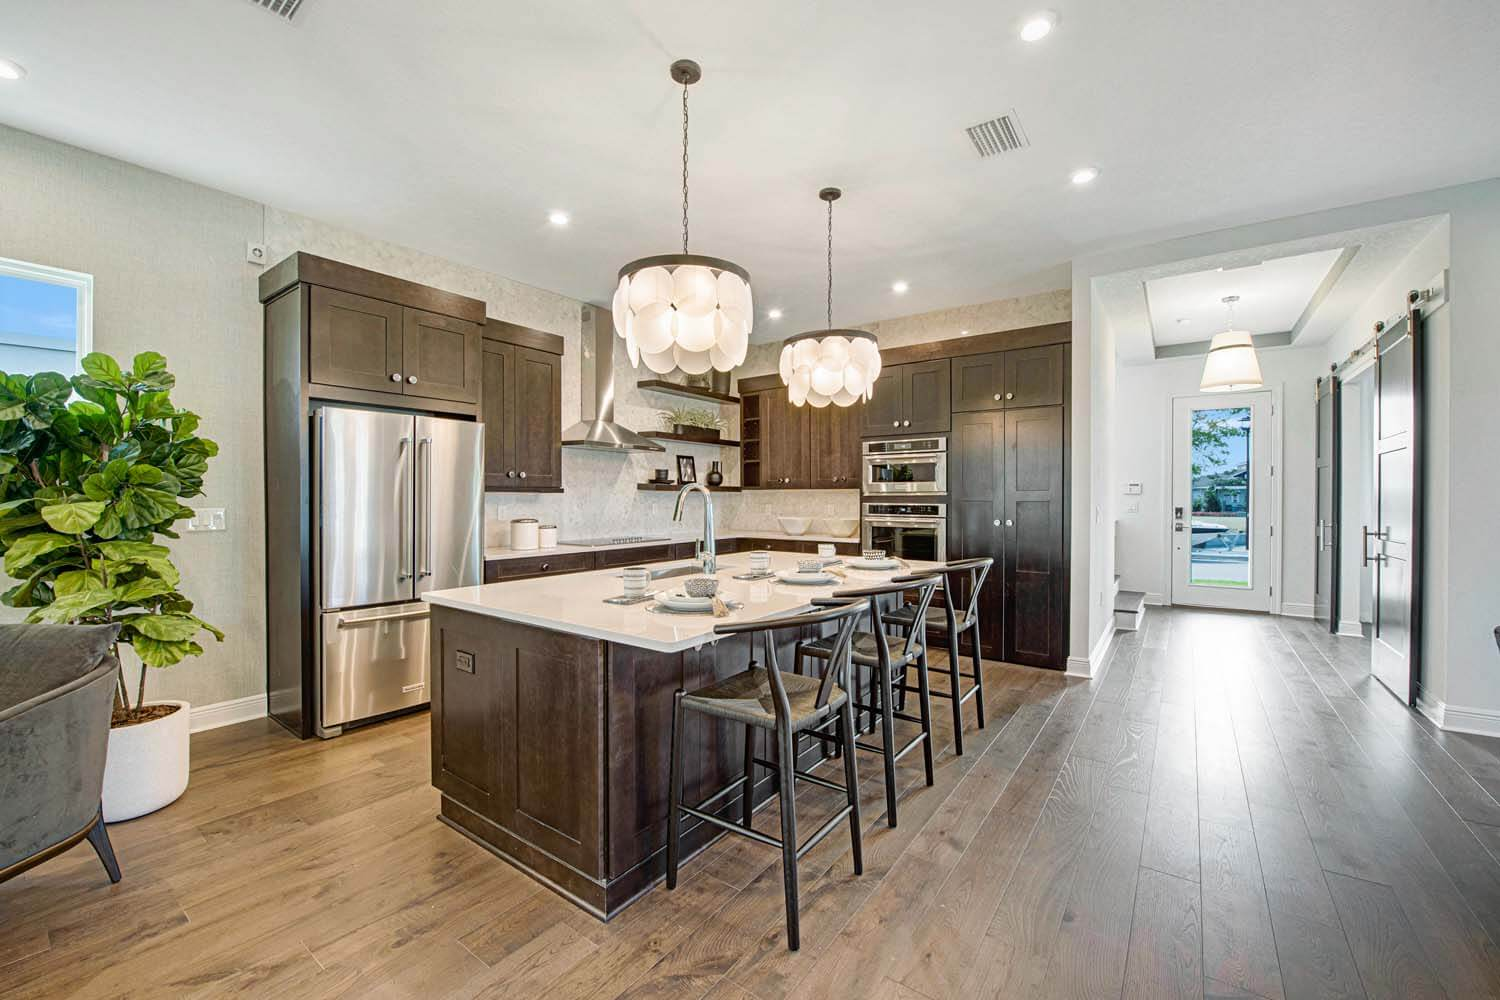 New Tampa  Model Home Allure in Laureate Park in Lake Nona, located at 6905 Arnoldson St, Orlando, FL Built By Cardel Homes Tampa